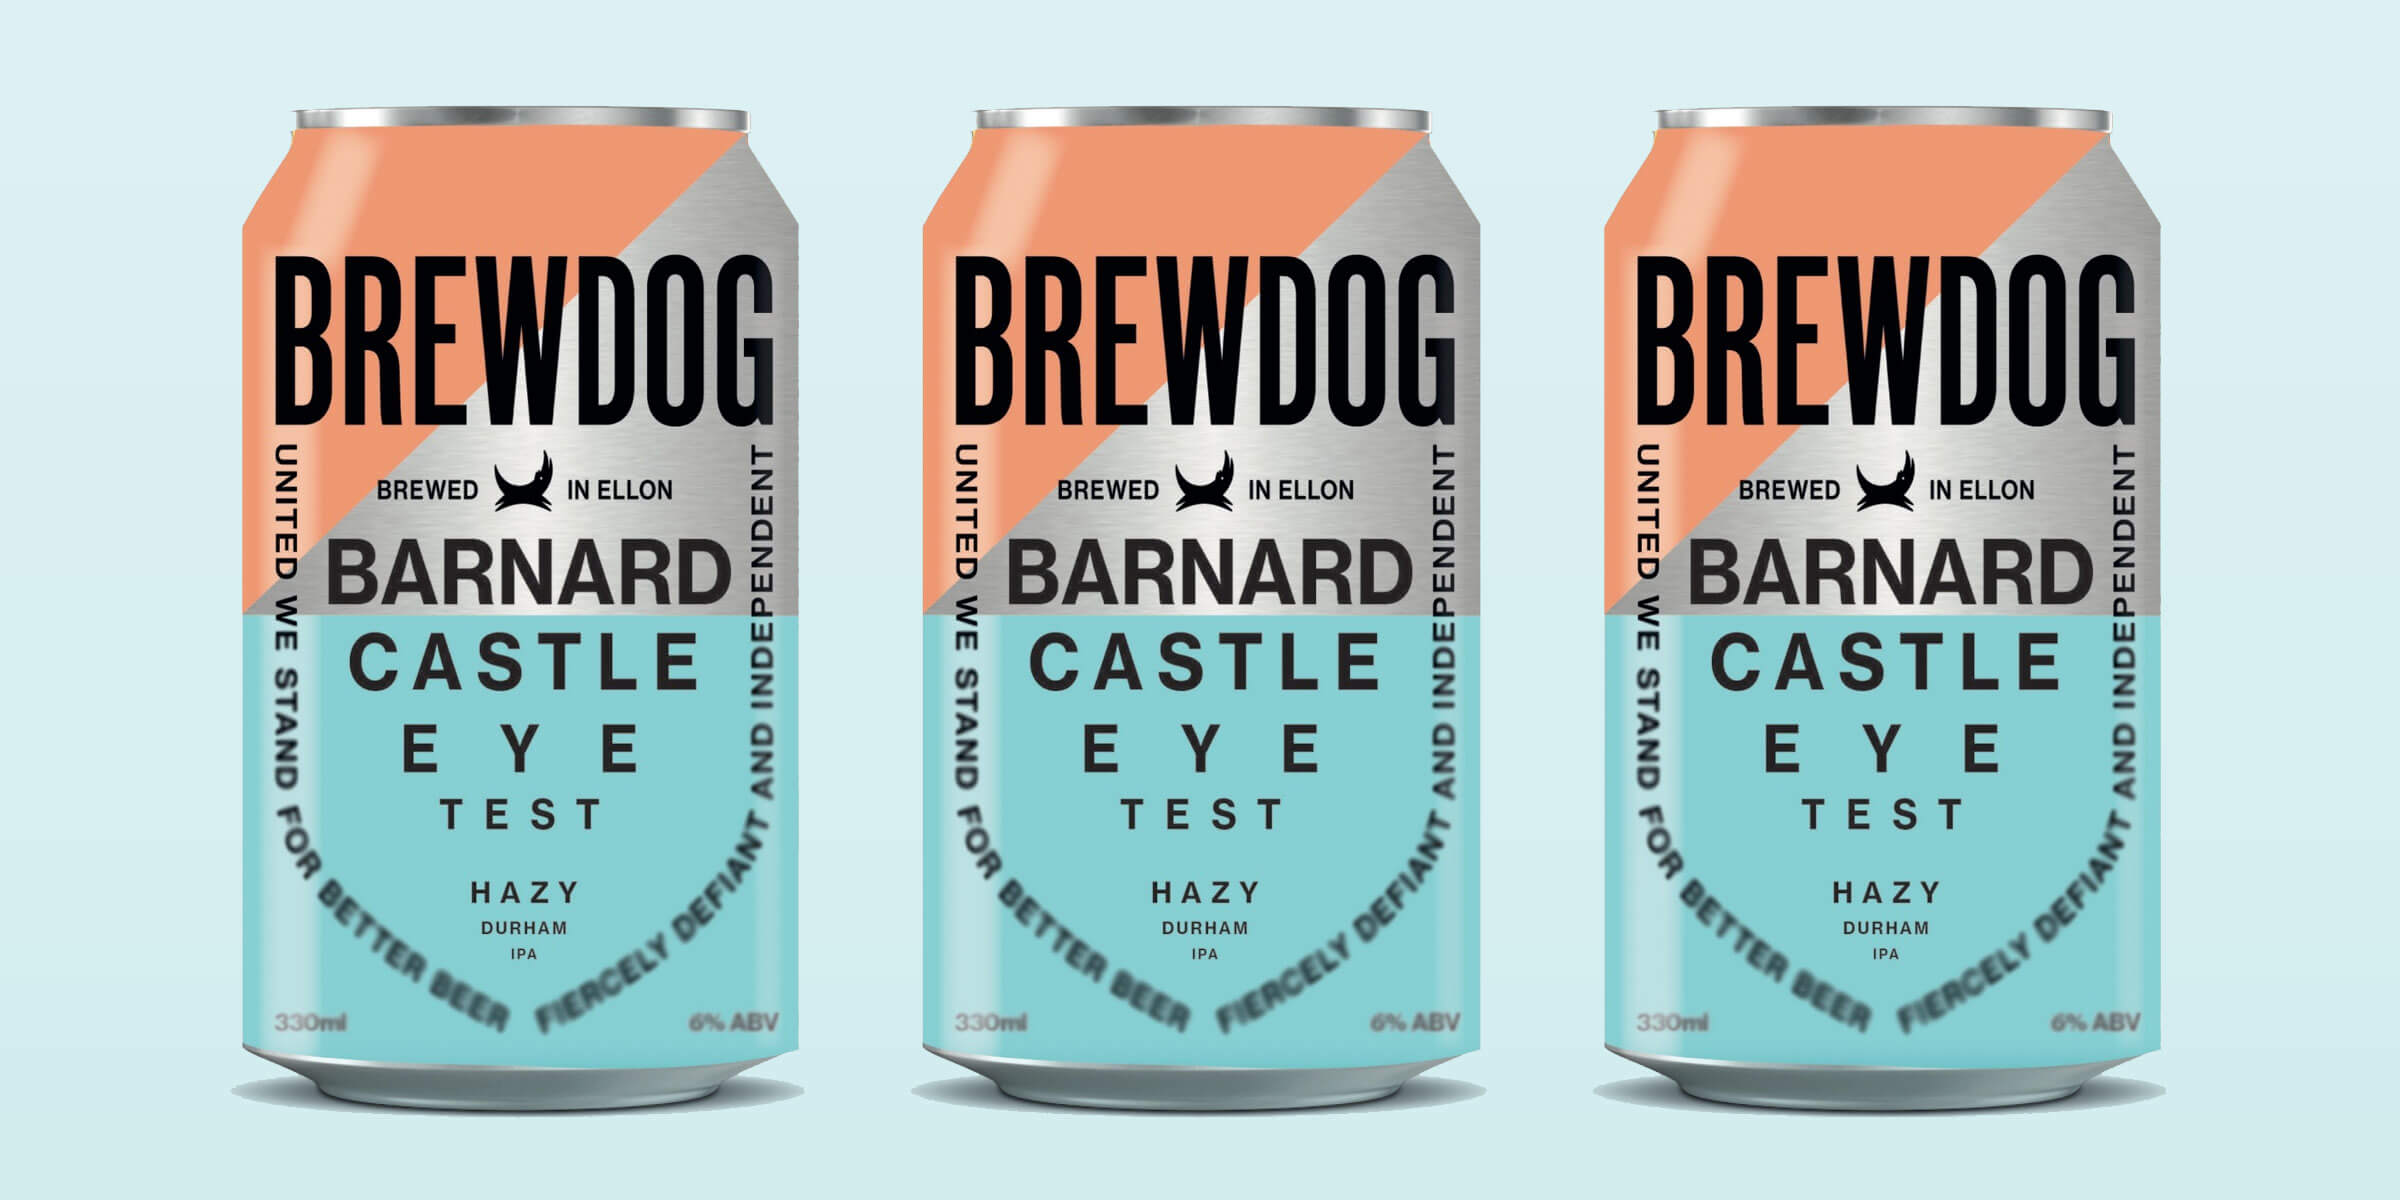 BrewDog launched Barnard Castle Eye Test IPA, mocking Boris Johnson's lockdown-defying, intrepid-adventurer Dominic Cummings, and with profits going to charity.